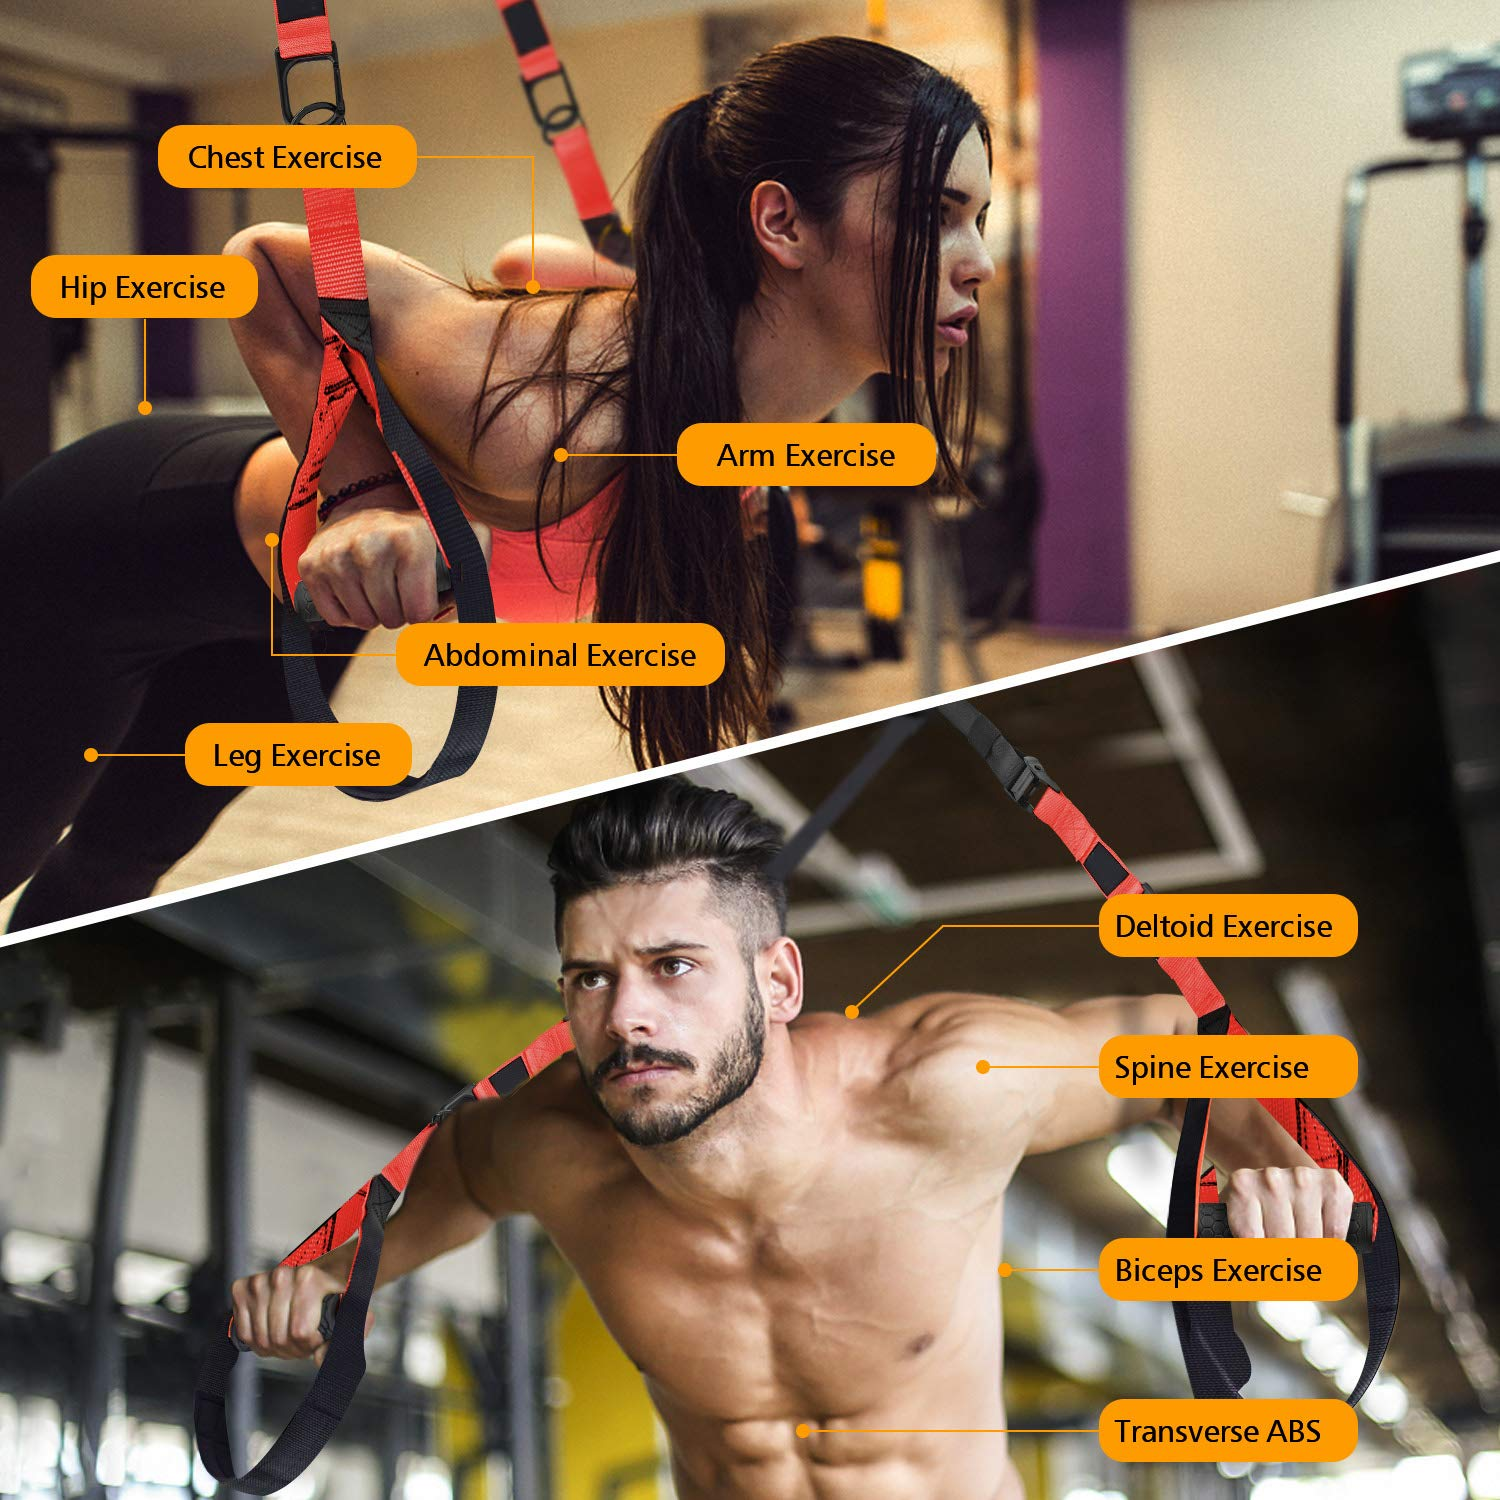 Complete Home Gym Fitness Trainer kit for Full-Body Workout Extension Strap 16 Week Program Included Door Anchor Fitness Guide NMVB Bodyweight Resistance Training Straps